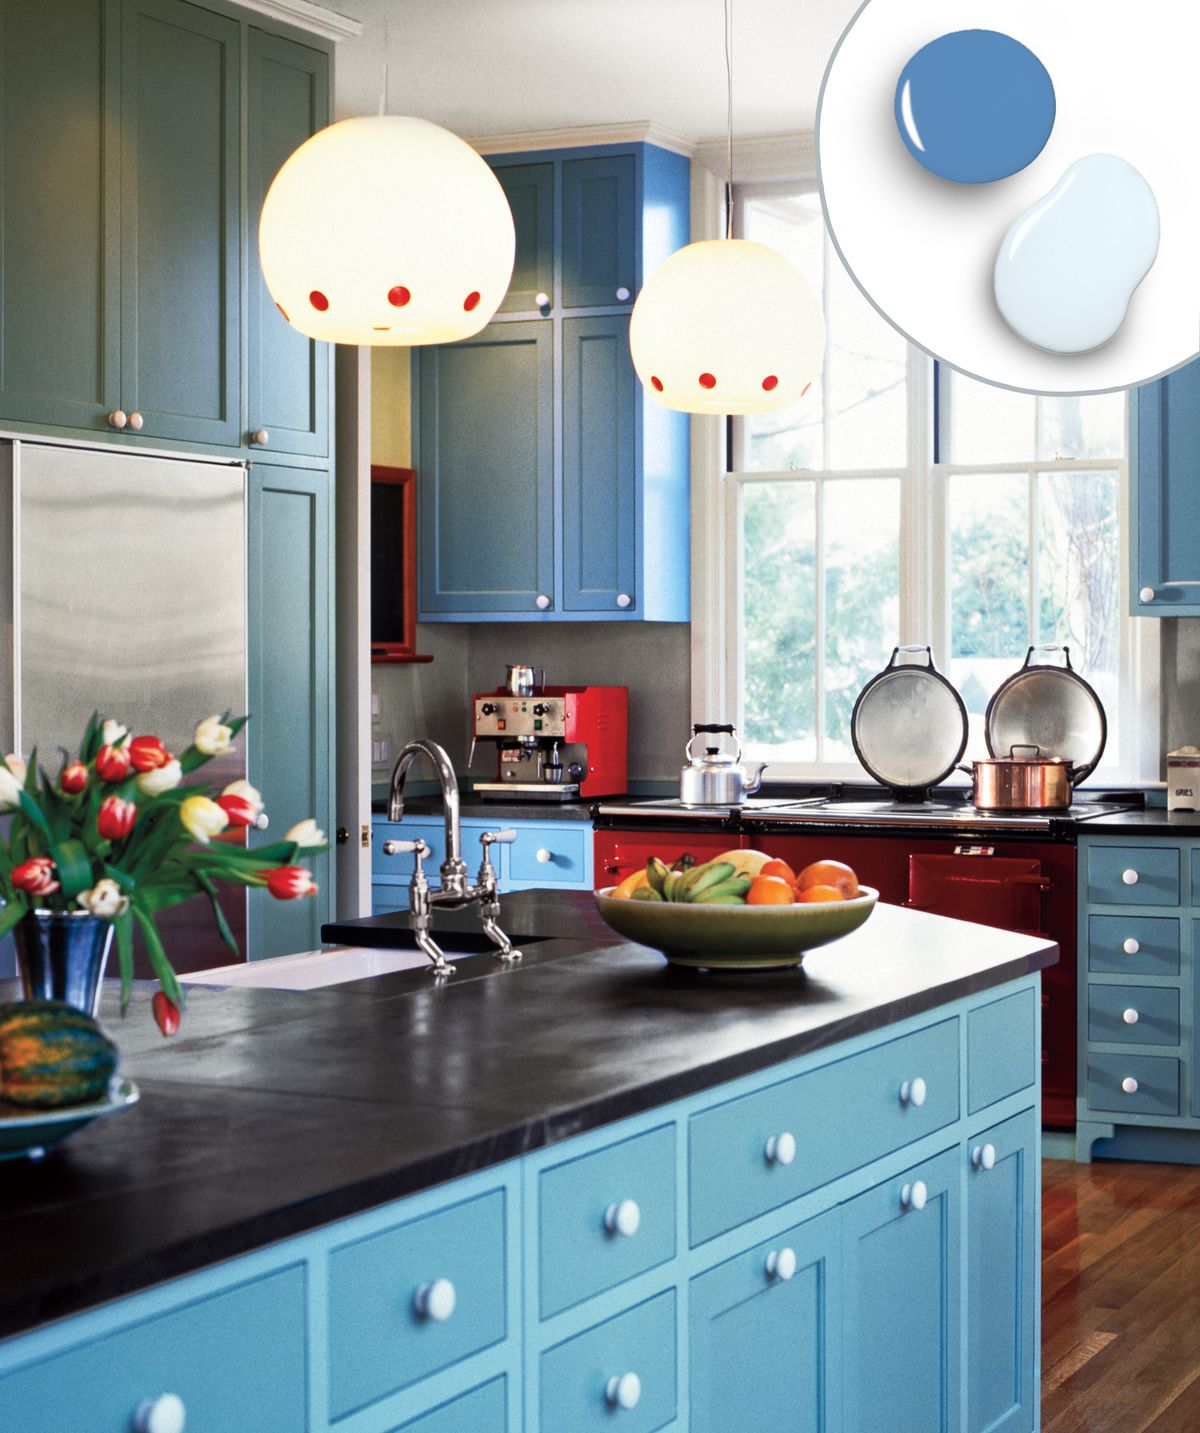 Painted blue kitchen cabinet and drawers paired with black countertop.